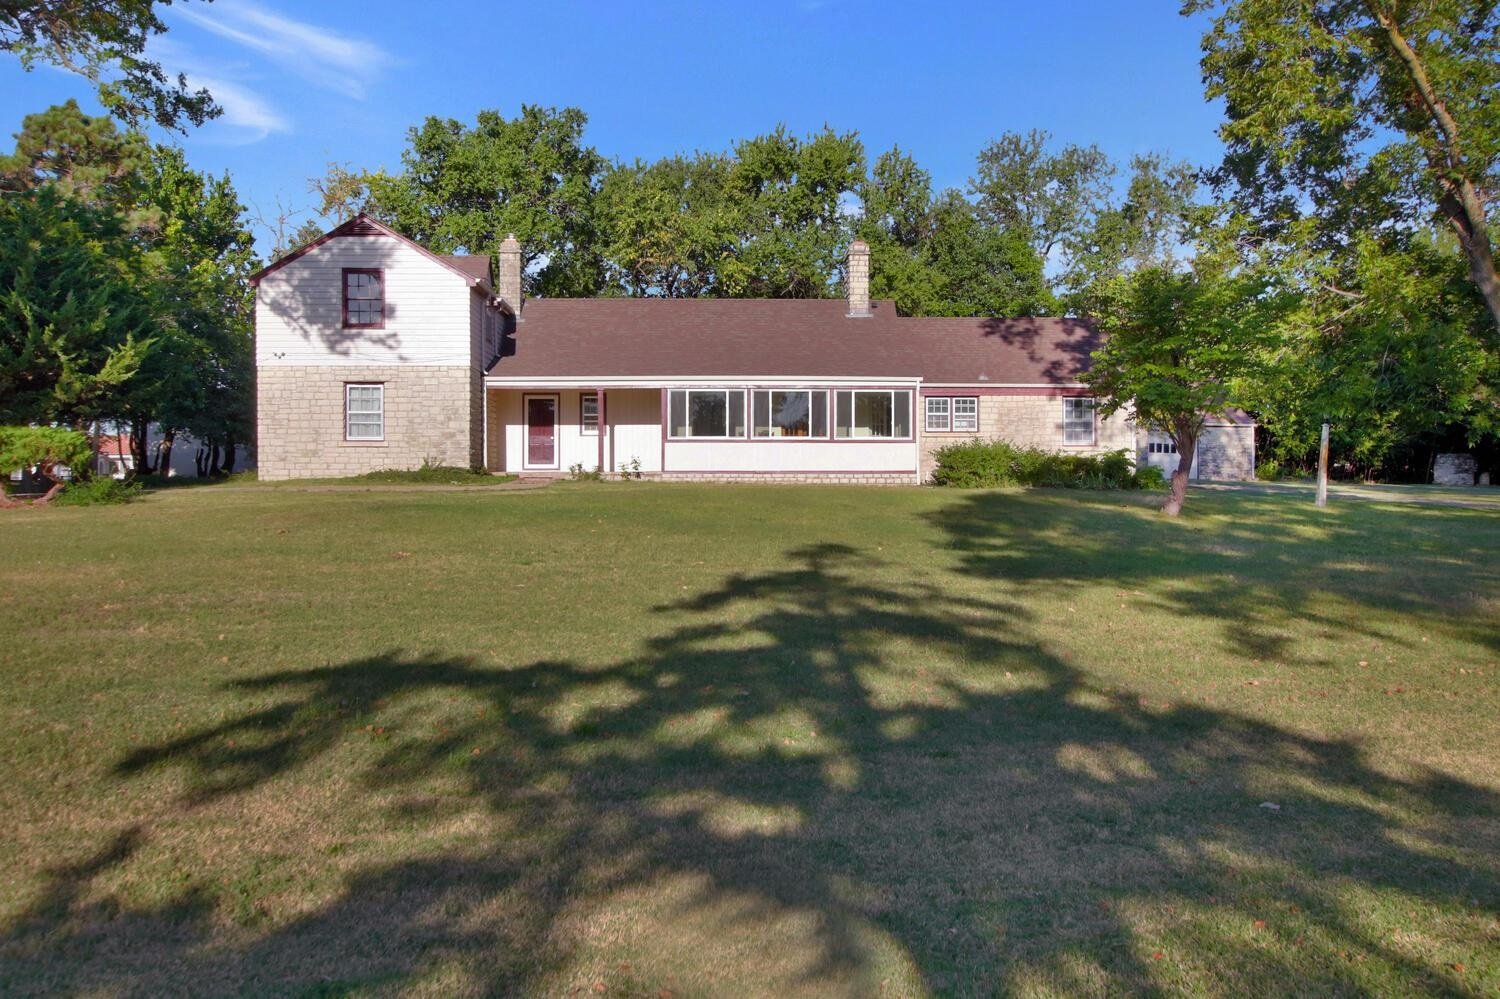 Location, location, location. This beautiful home is nestled on a nice 1.40 acre lot tucked away beh